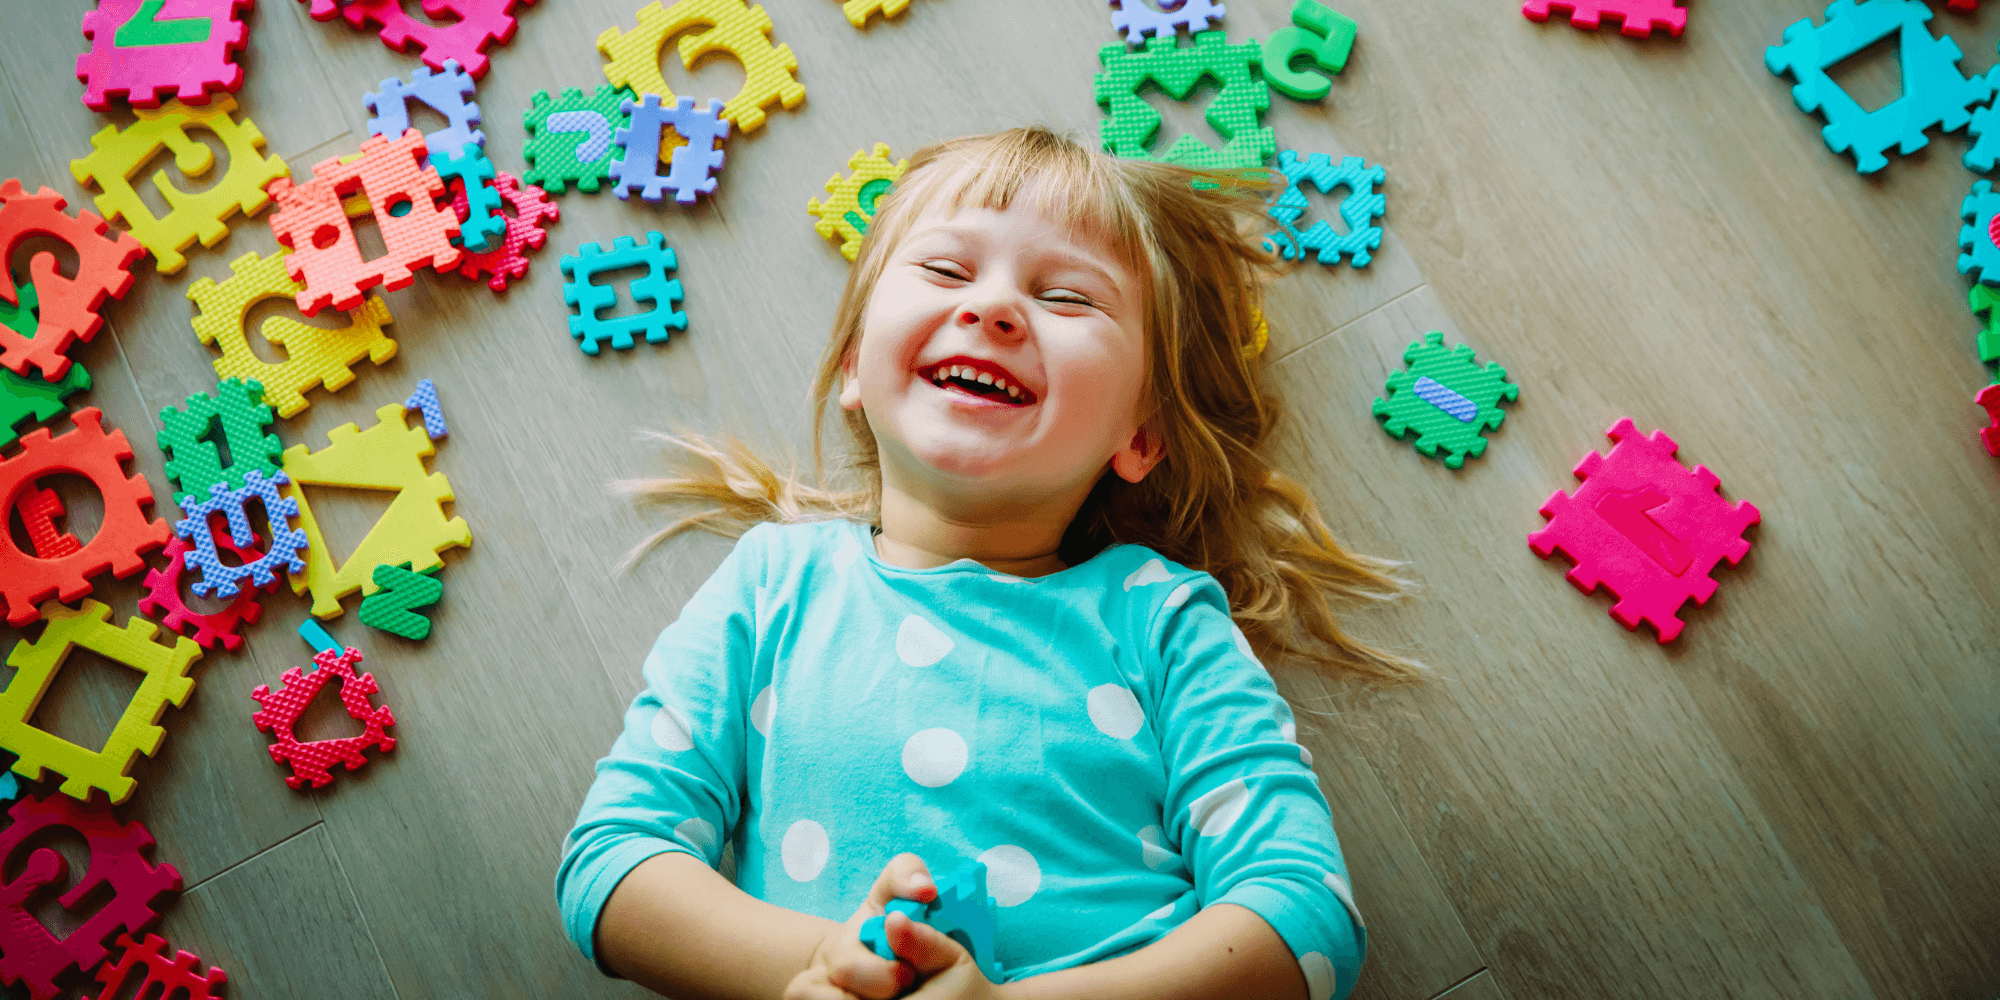 Little girl laughing playing with letter block toys